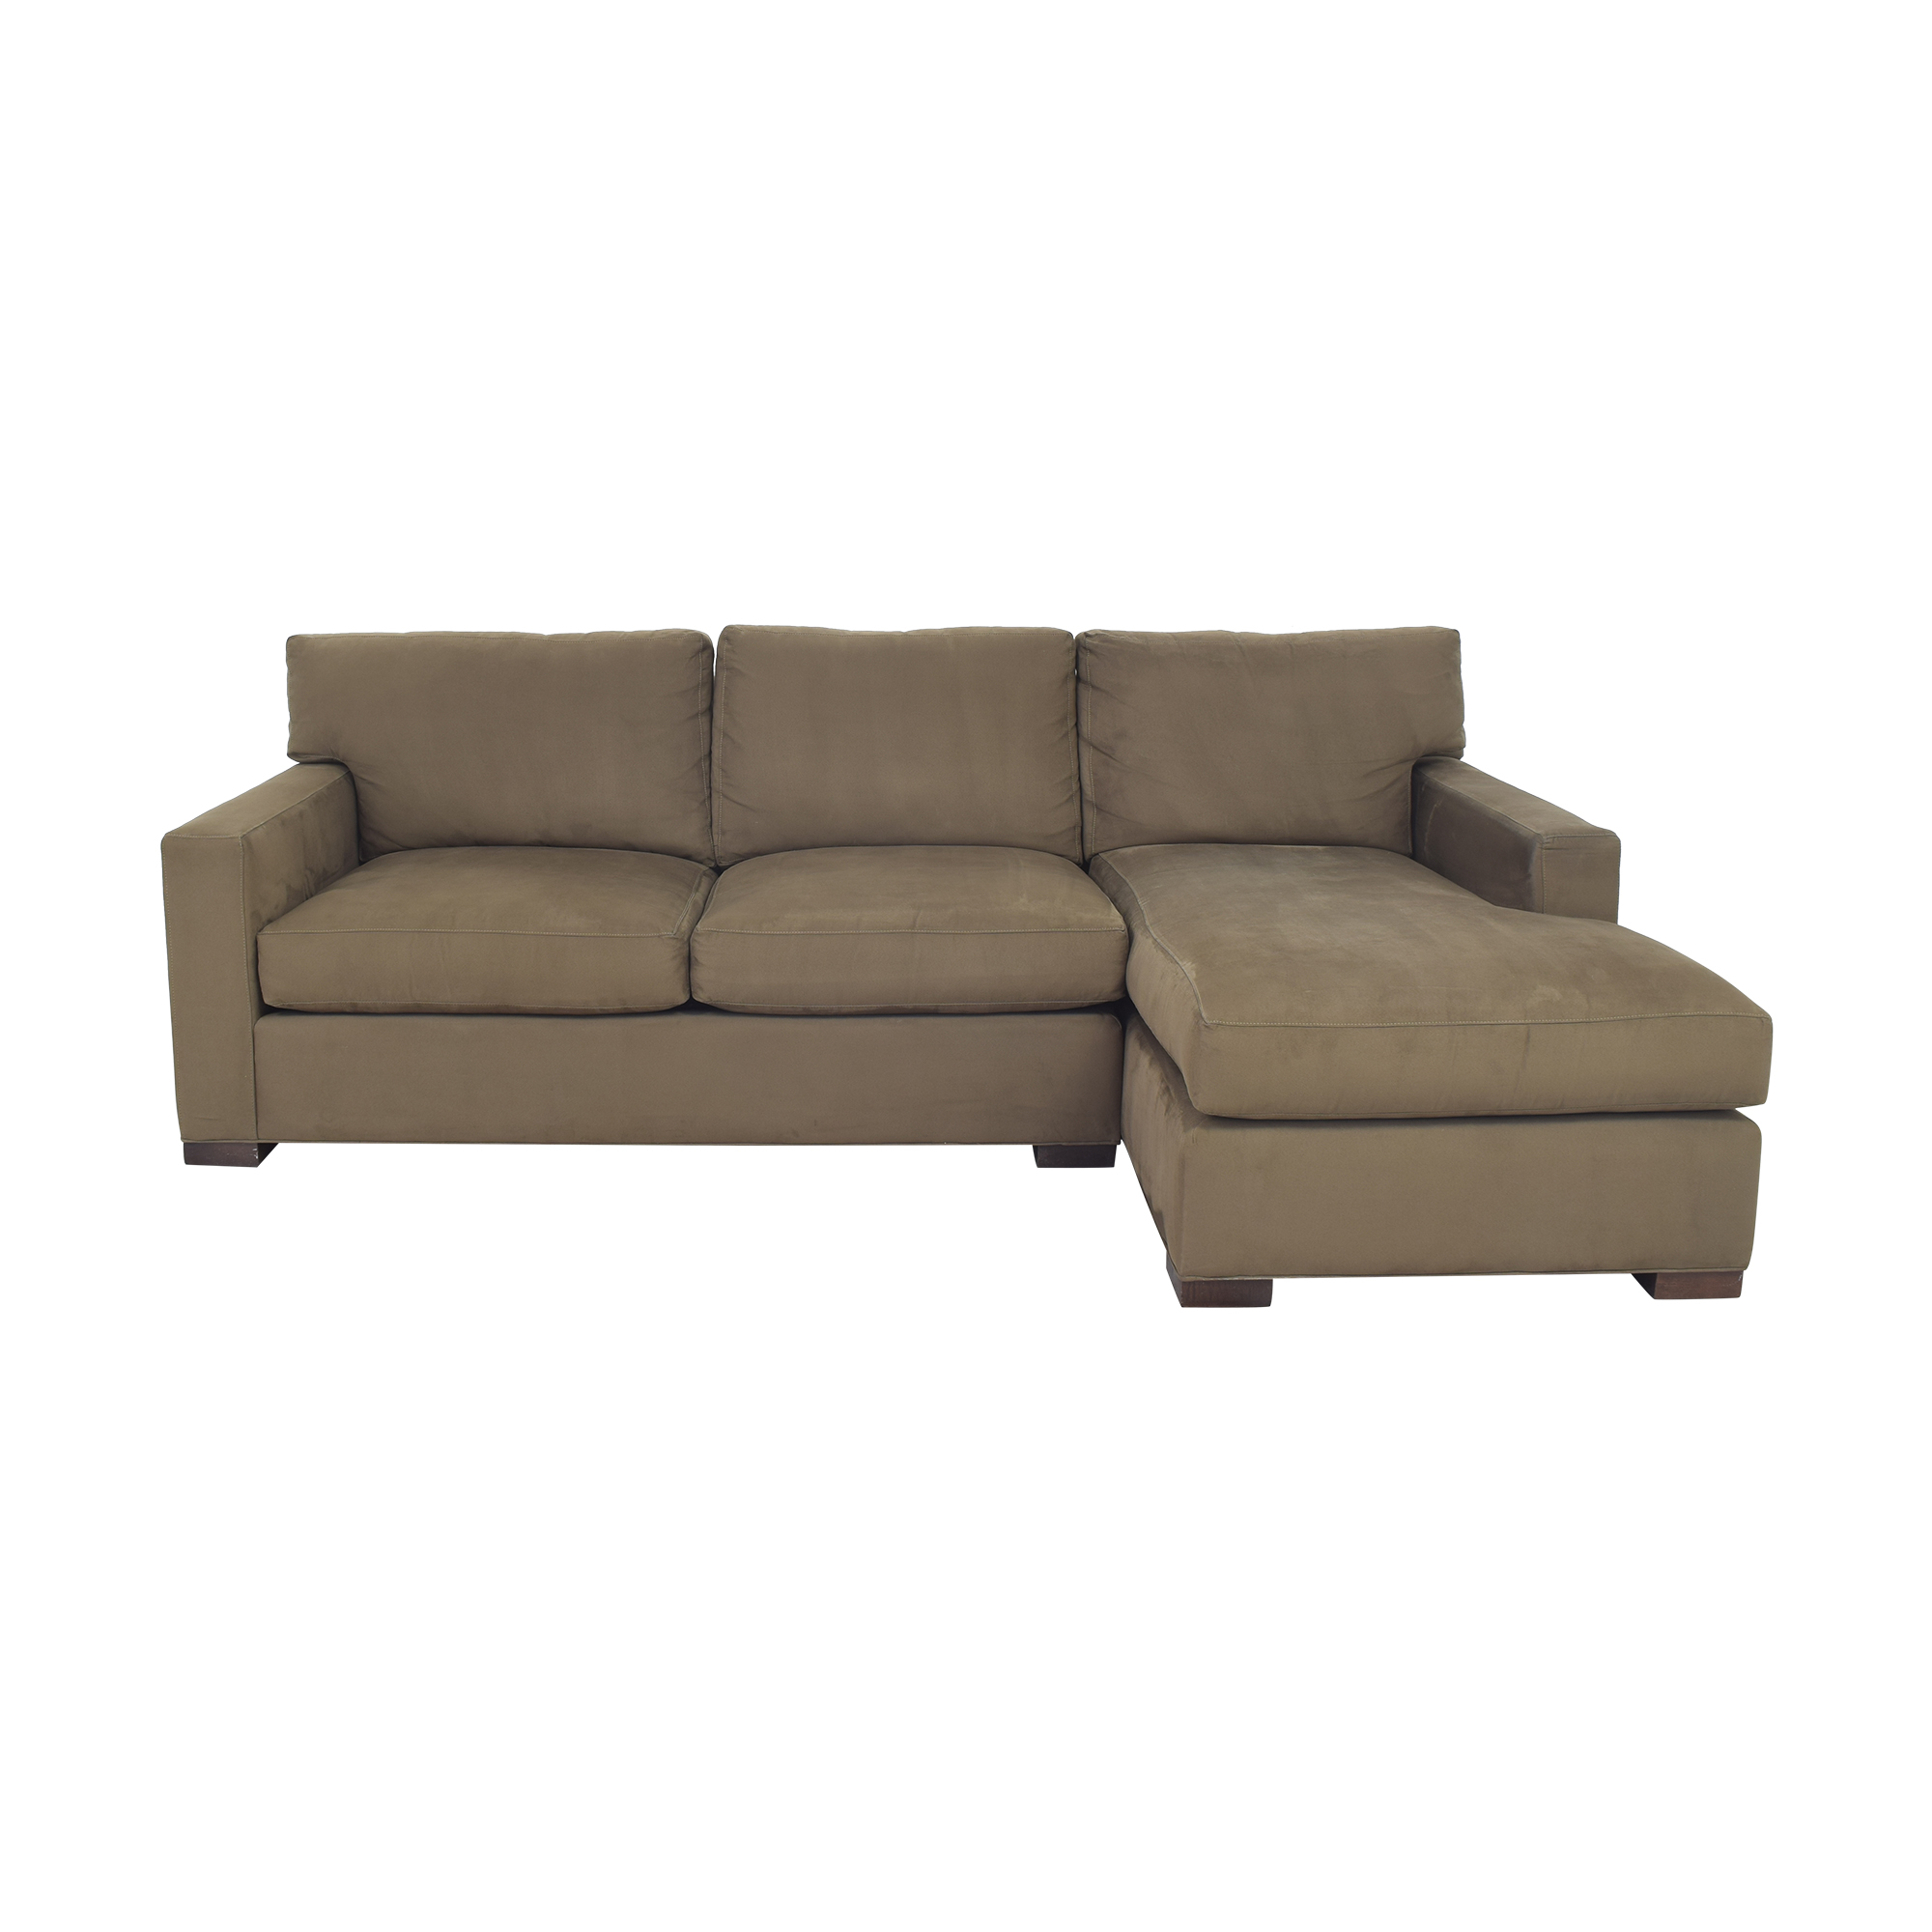 Crate & Barrel Axis II Two Piece Sectional Sofa sale